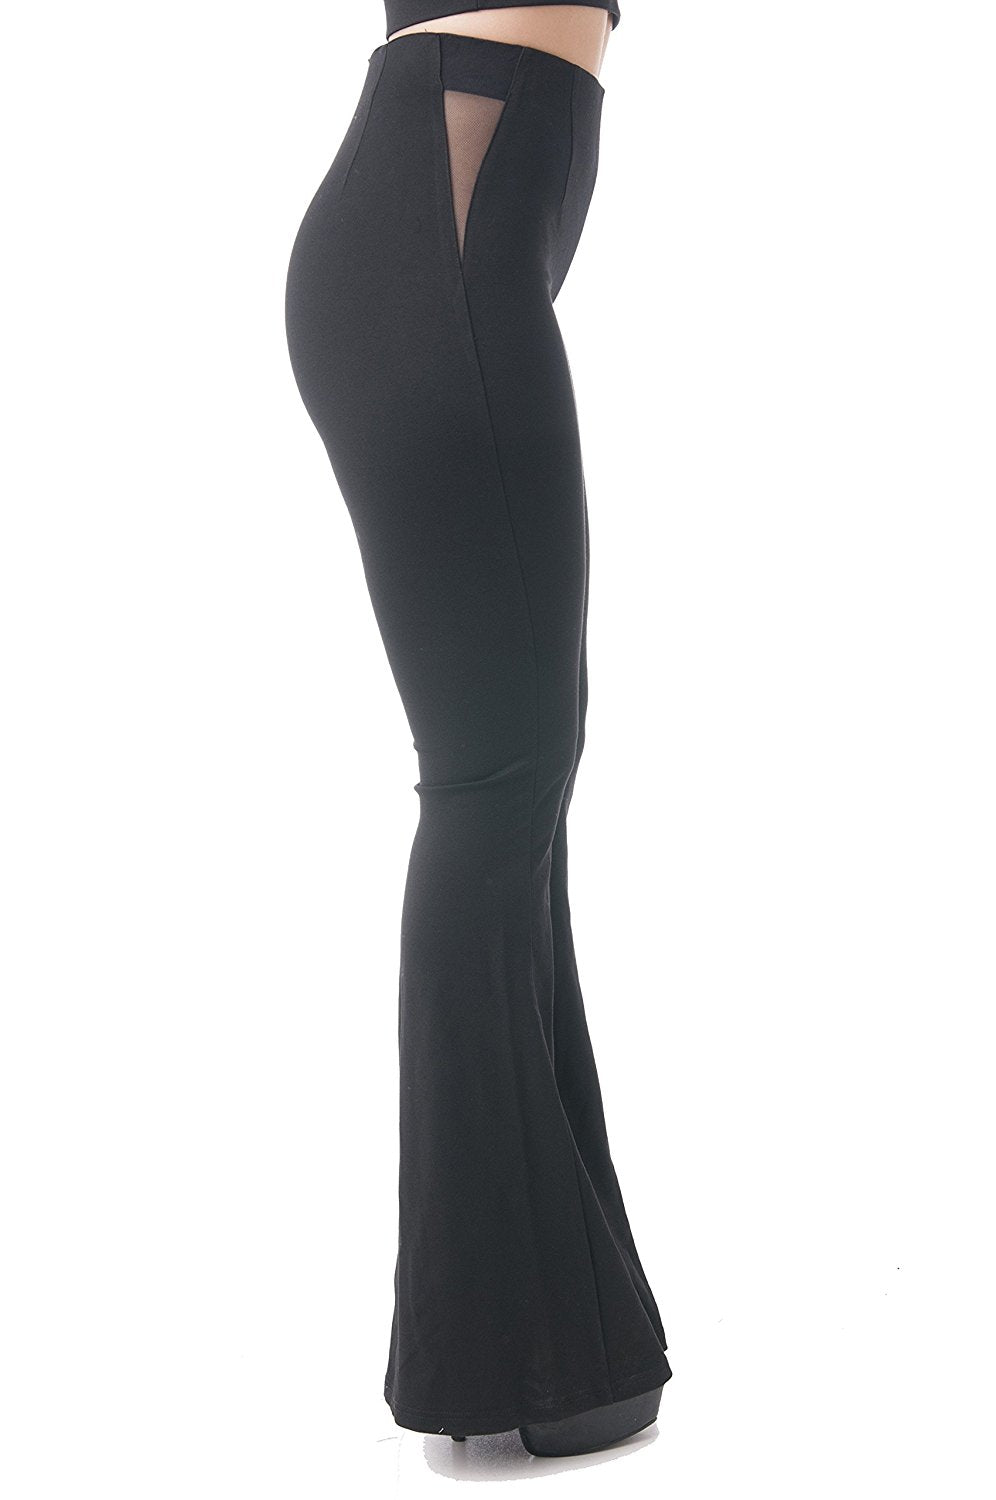 Khanomak Full Length Flare Stretch Leggings With Mesh Sides See Through